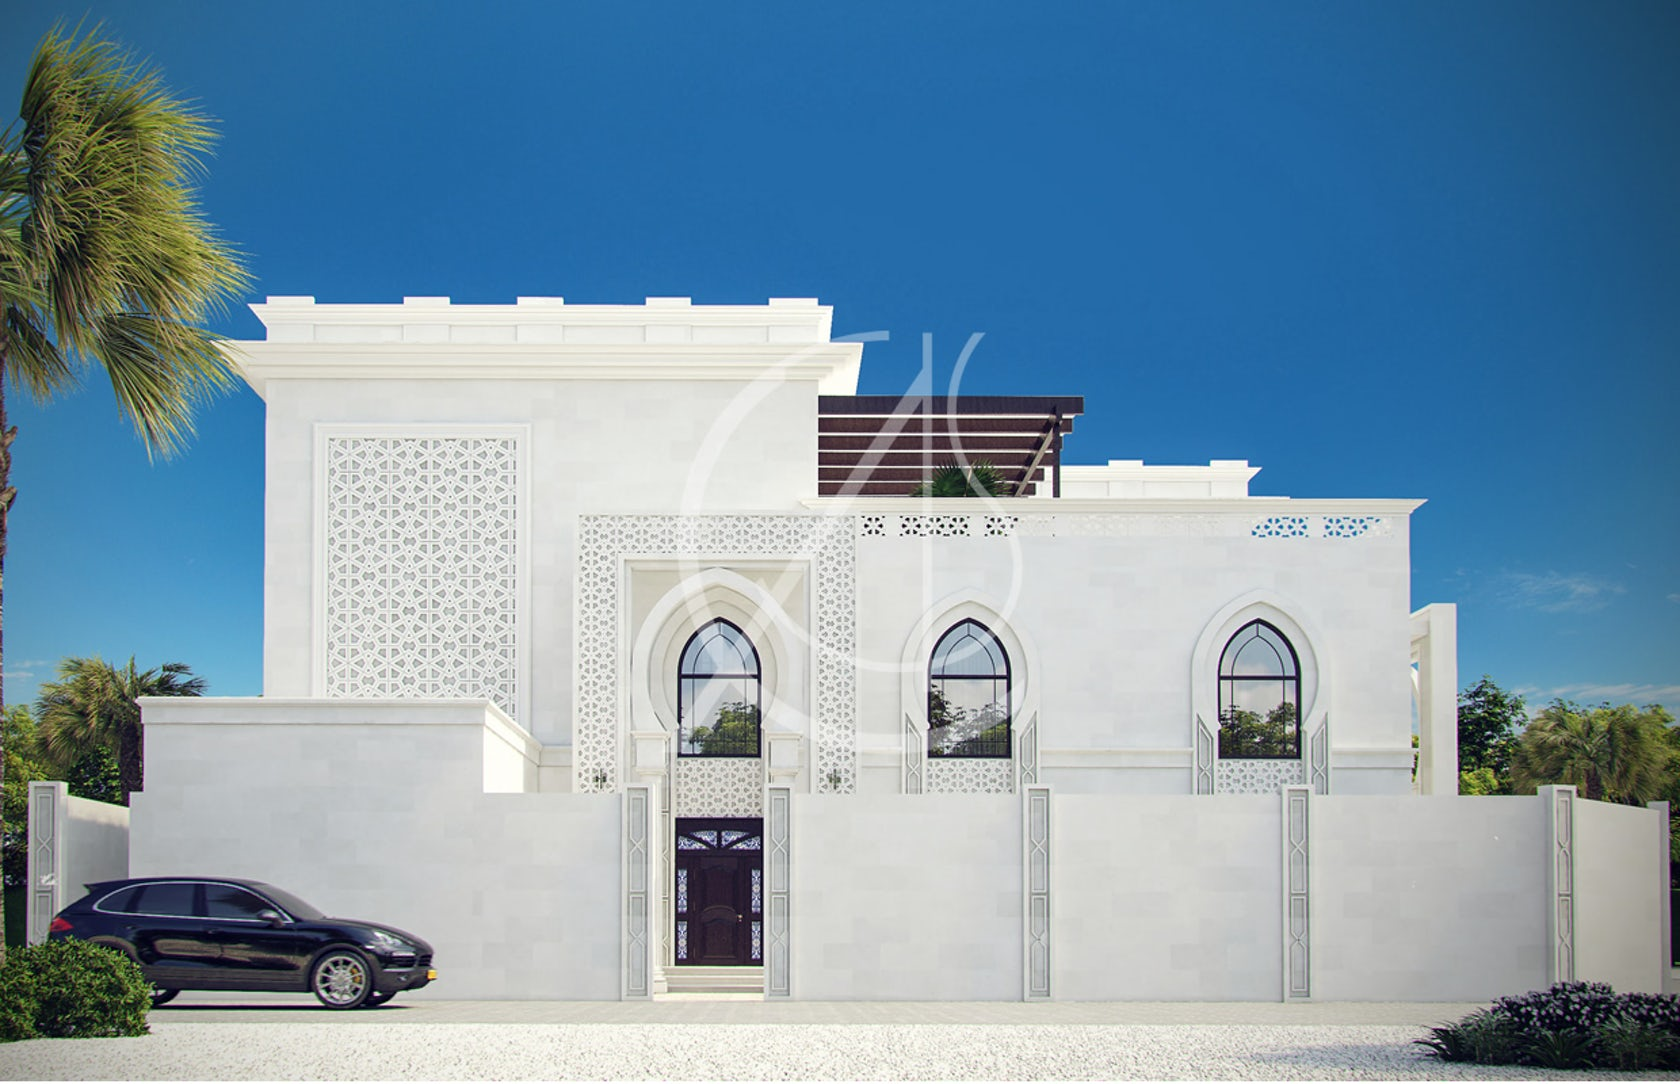 White Modern Islamic Villa Exterior Design on Architizer on spanish architecture homes, french architecture homes, organic architecture homes, engineering homes, georgian architecture homes, classical architecture homes, economy homes, traditional architecture homes, colonial architecture homes, italian architecture homes, chinese architecture homes, american architecture homes, greek architecture homes, russian architecture homes, ancient egyptian architecture homes, european architecture homes, pakistani architecture homes, dutch architecture homes, moorish revival homes, arabic architecture homes,